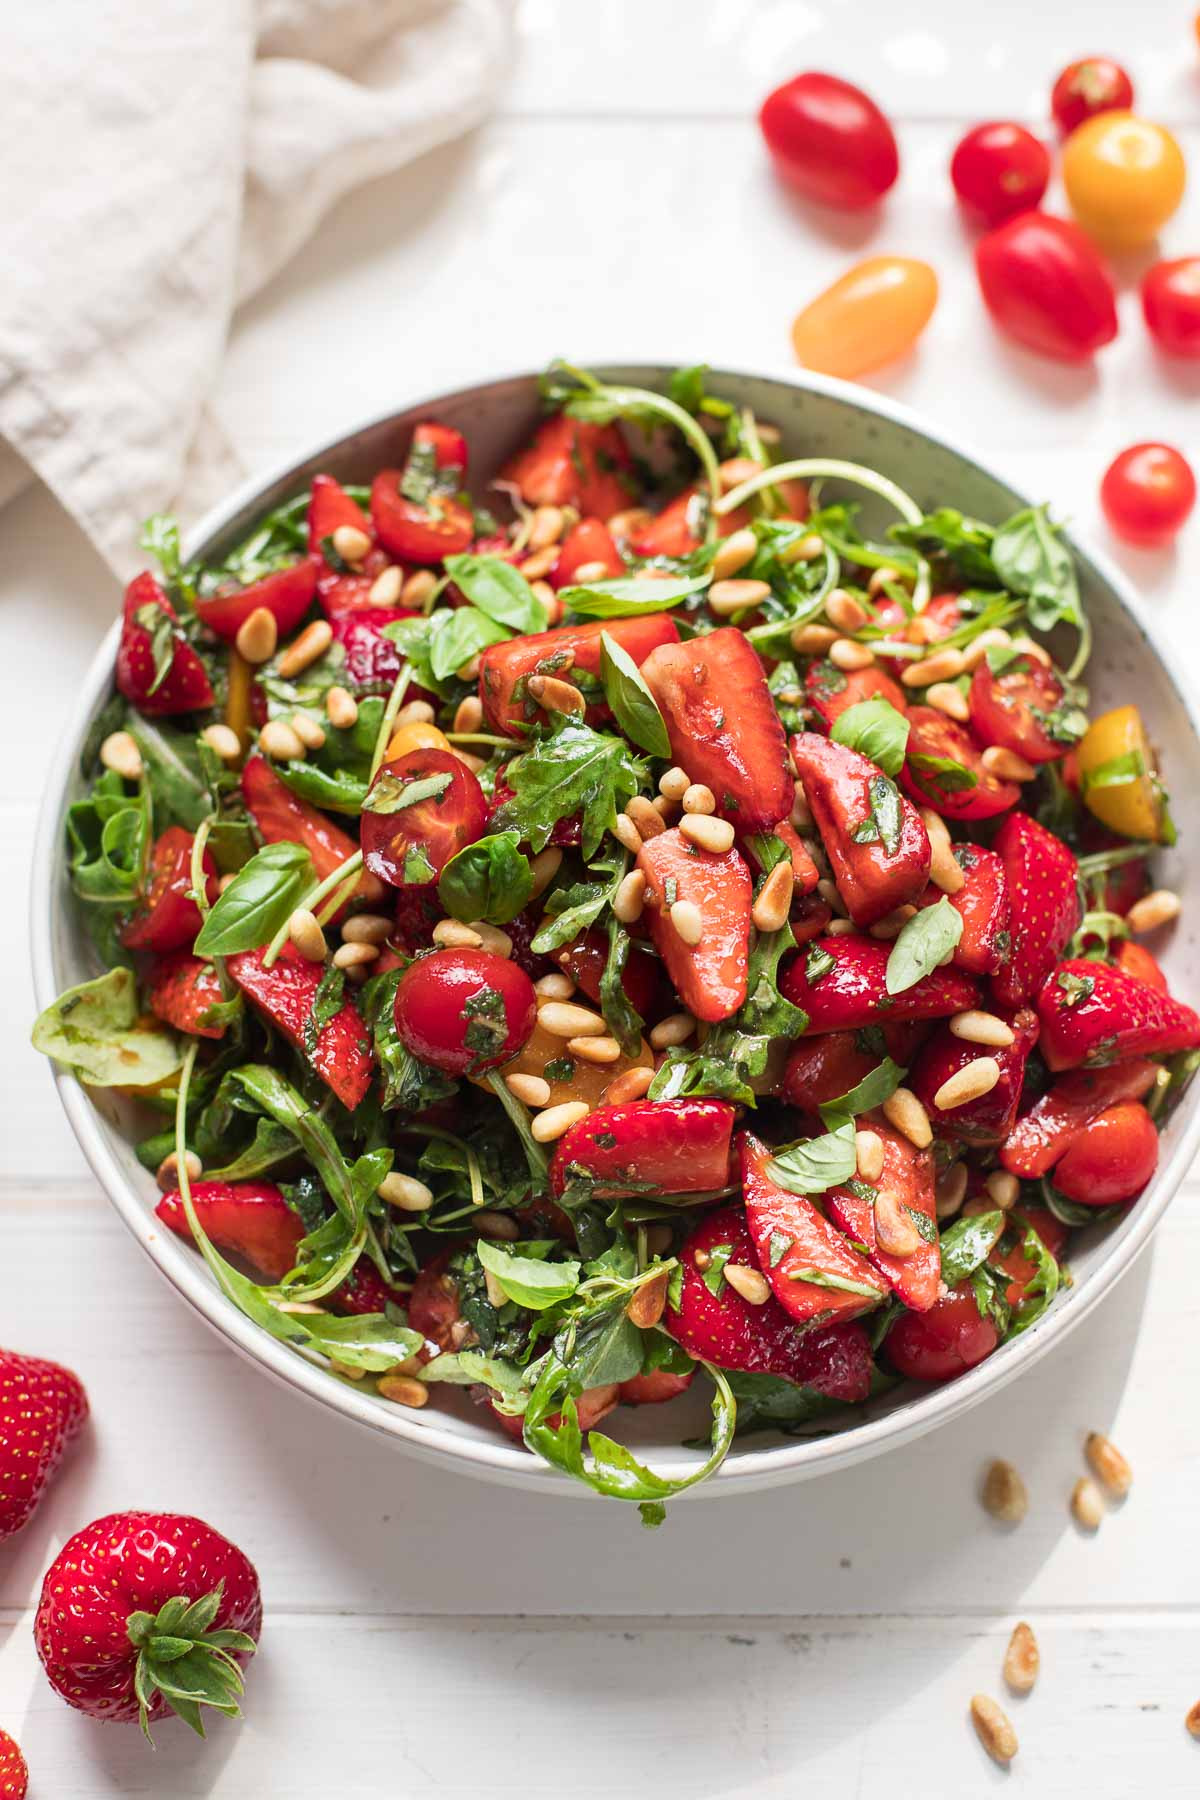 Summer Salad with Strawberries, Tomatoes, Mint & Basil